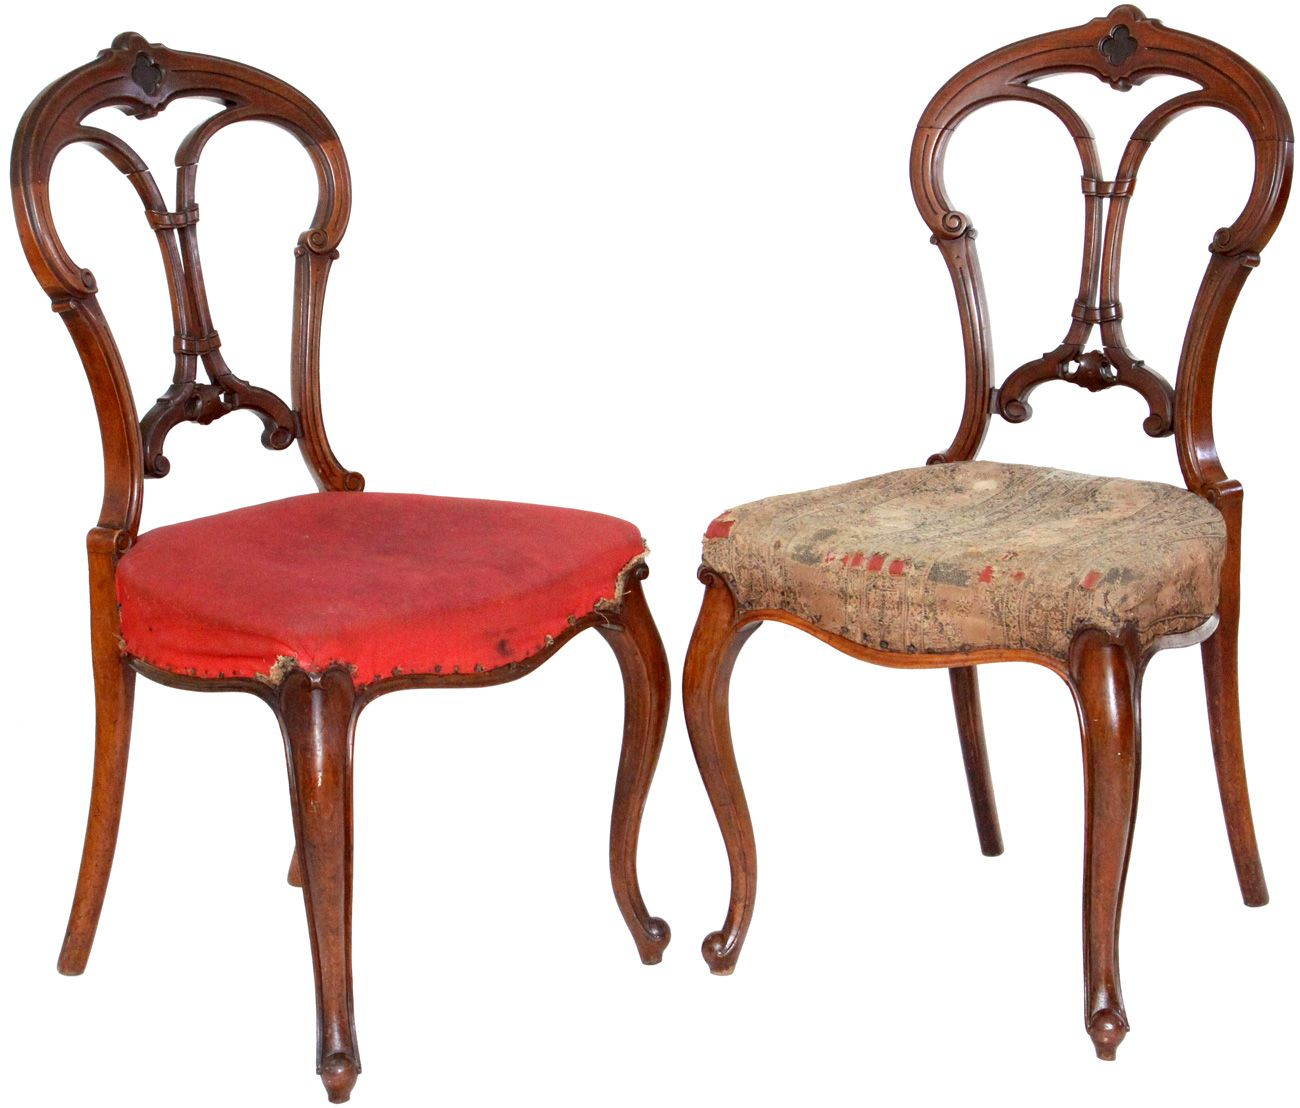 Antique Furniture | Pair Of Antique Victorian Balloon Back Chairs With  Carved Back .